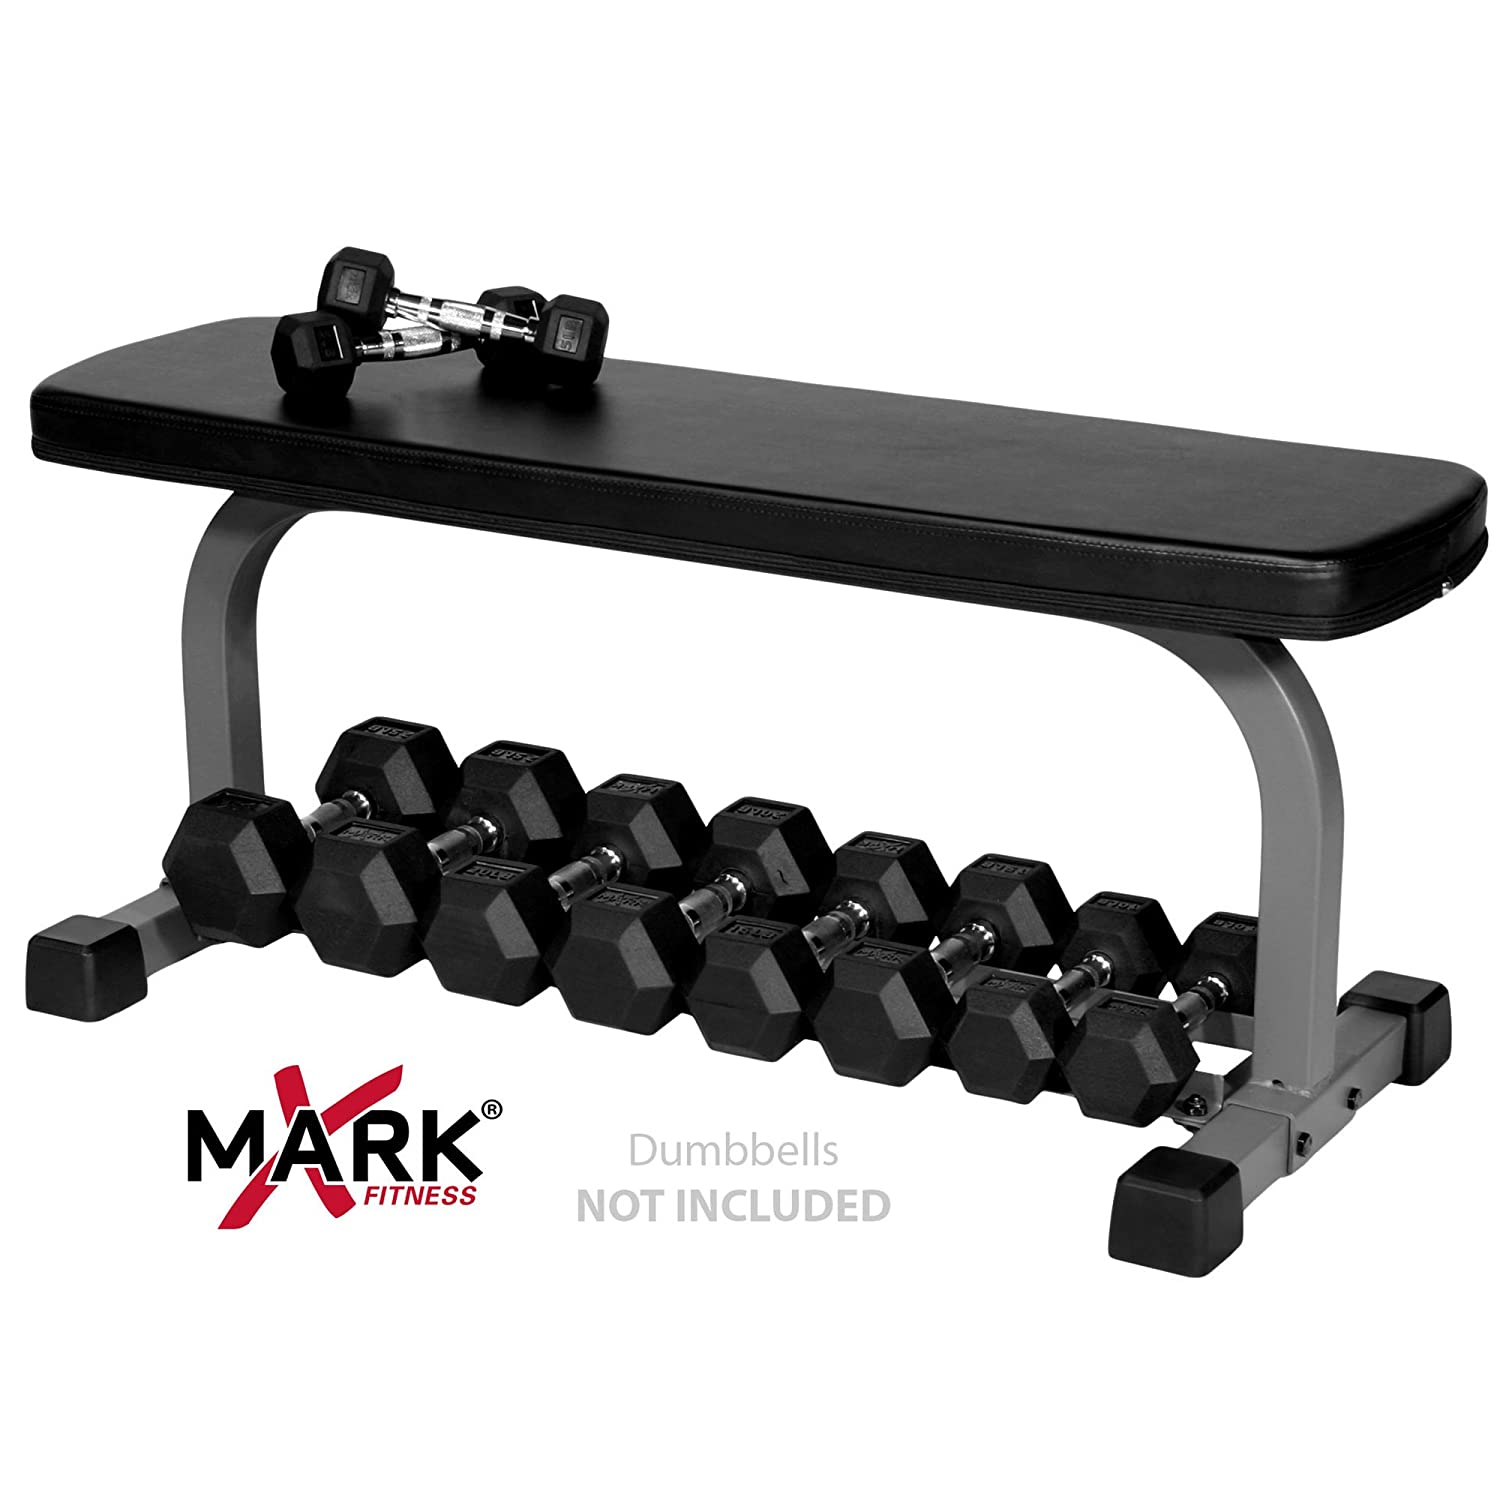 walmart decline cap canada en flatinclinedecline bench incline ip flat with weights strength benches weight